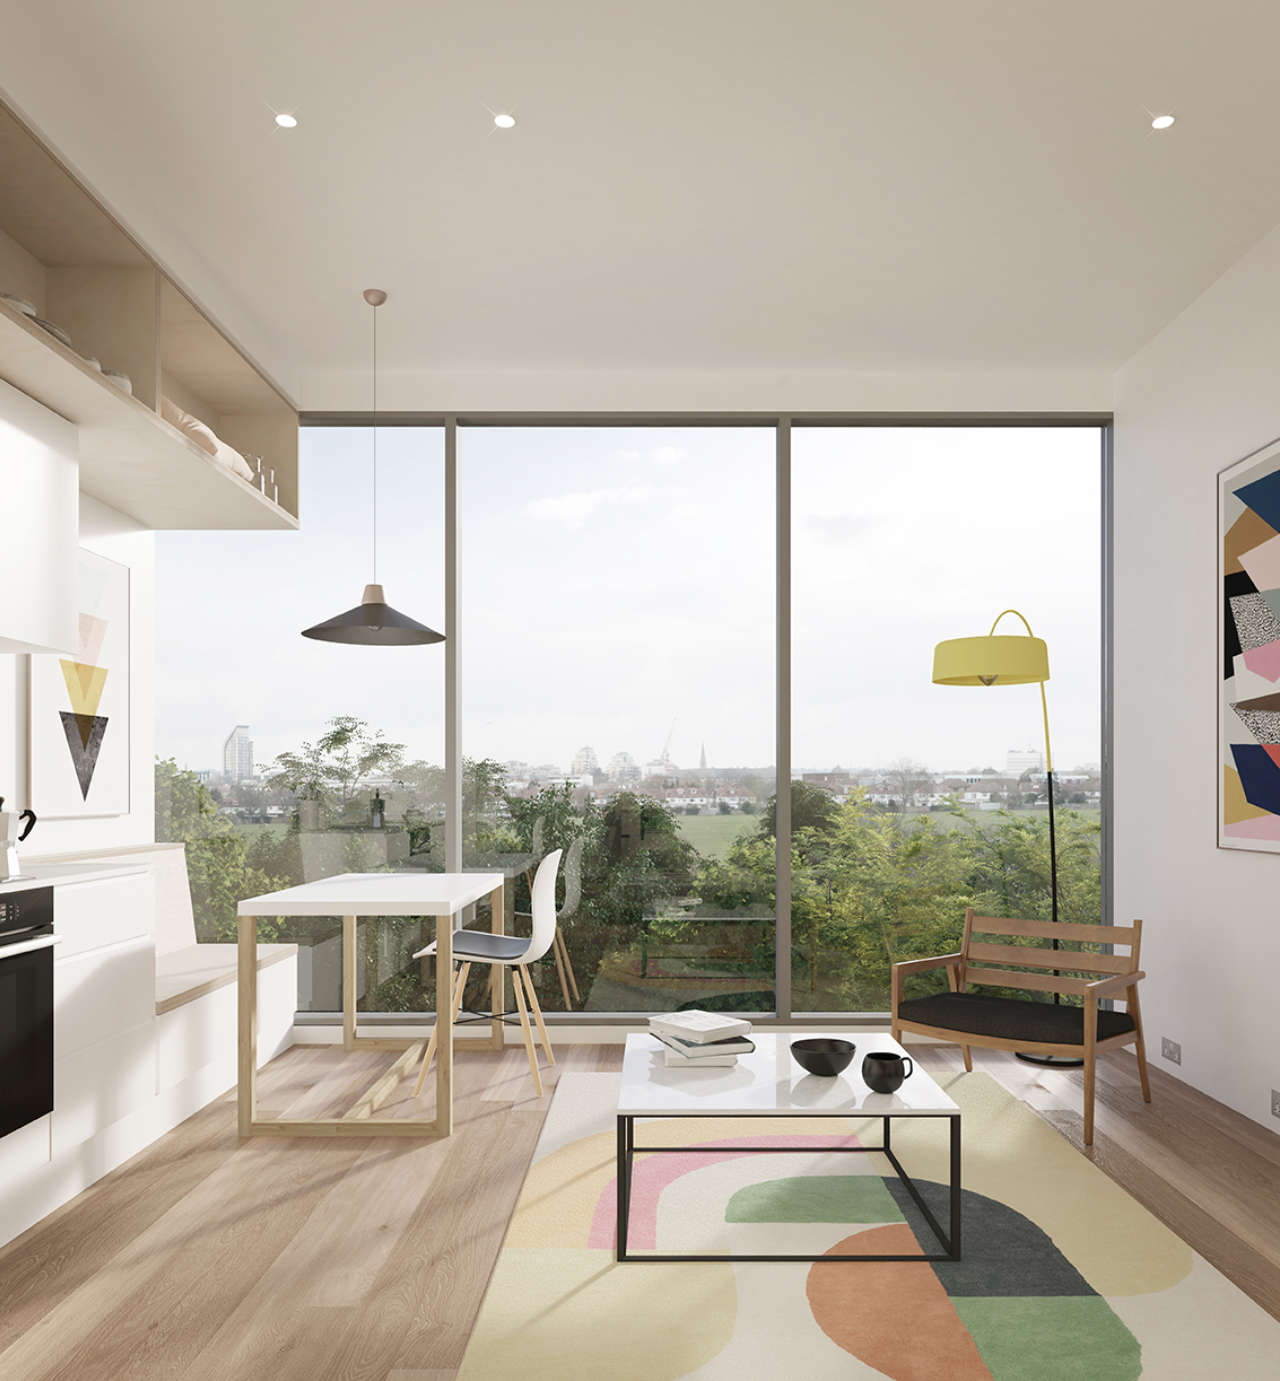 How Covid is Changing Residential Design